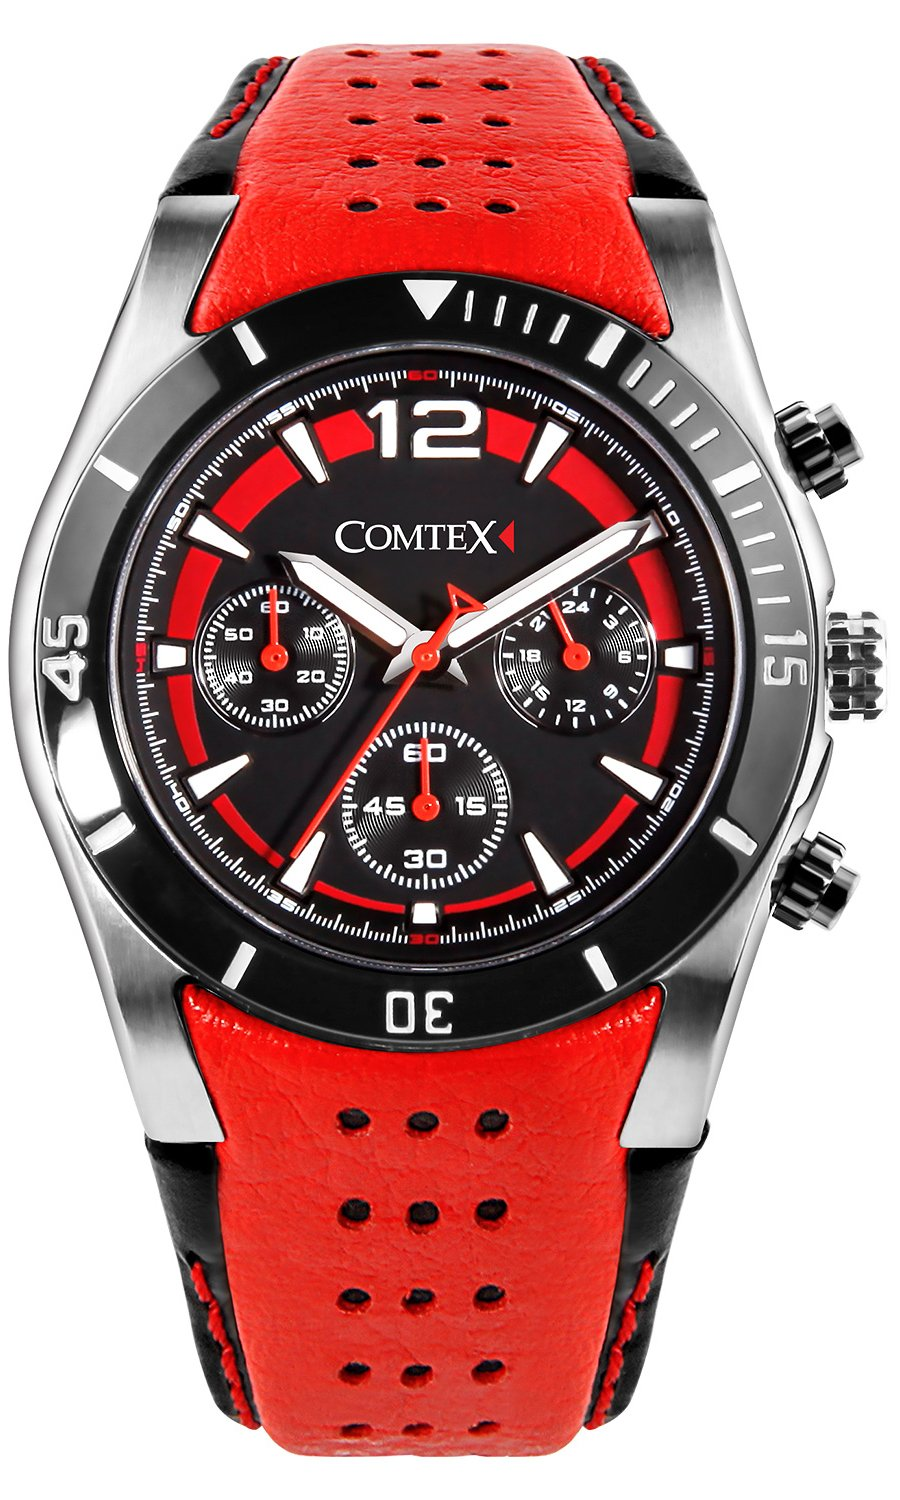 Comtex Men's Watch Cool Sports Watch Chronograph Military with Red Leather by Comtex